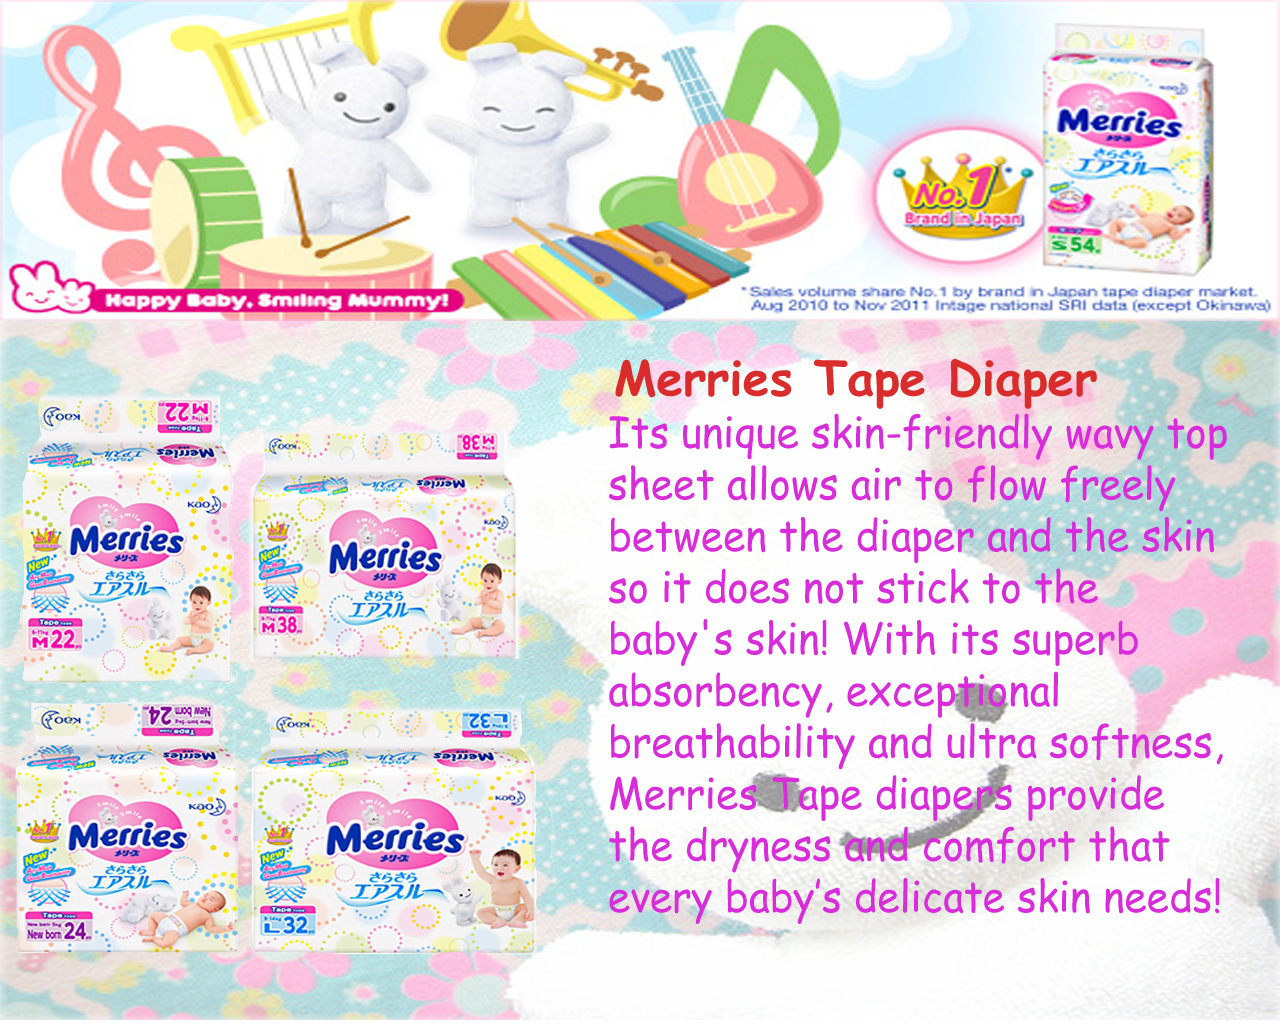 Buy Merries Baby Diapers Pants Carton Sale Deals For Only S38 Good Skin M22 Highlights